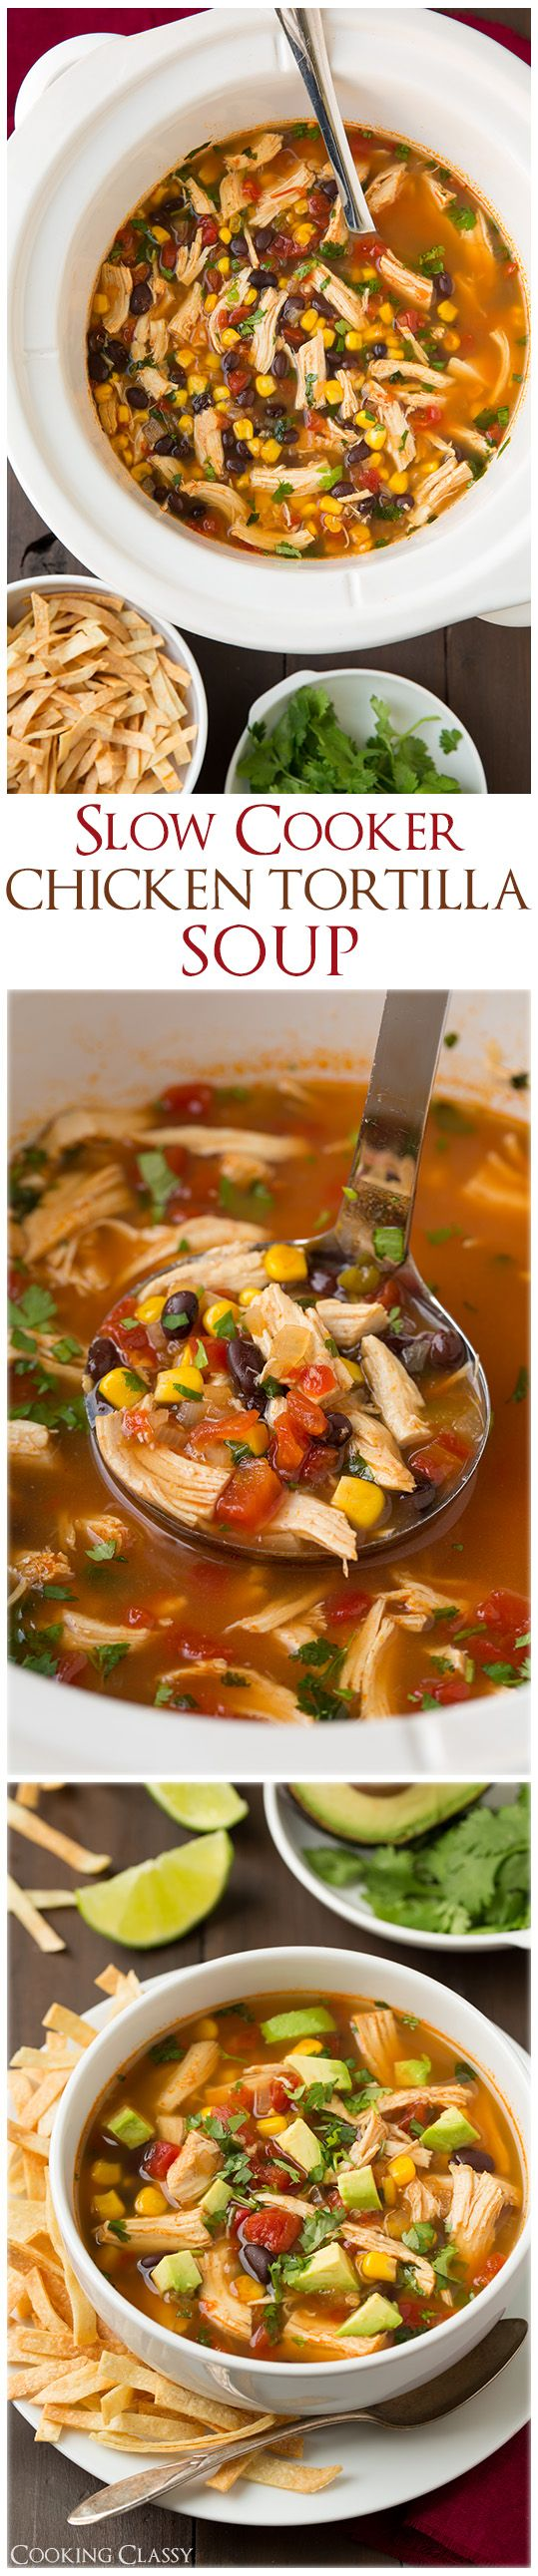 Slow Cooker Chicken Tortilla Soup – this is definitely going to be added to our dinner rotation, LOVED it and its so easy!